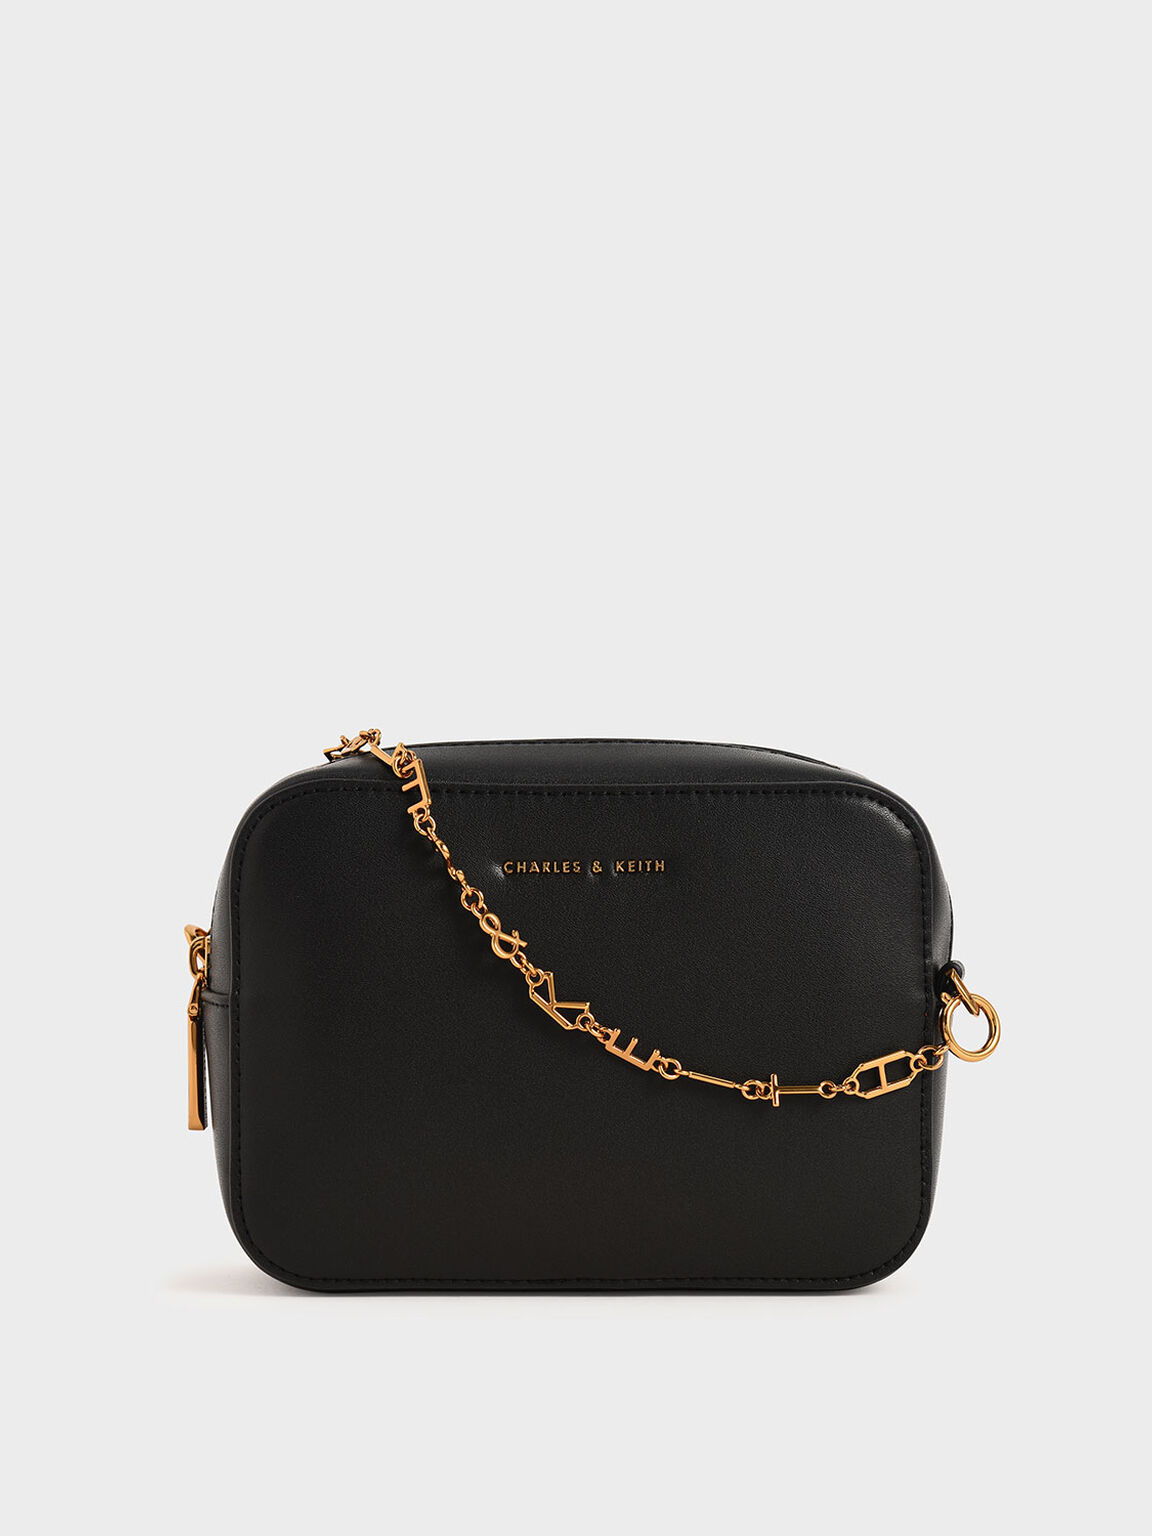 Chain-Link Rectangular Bag, Black, hi-res